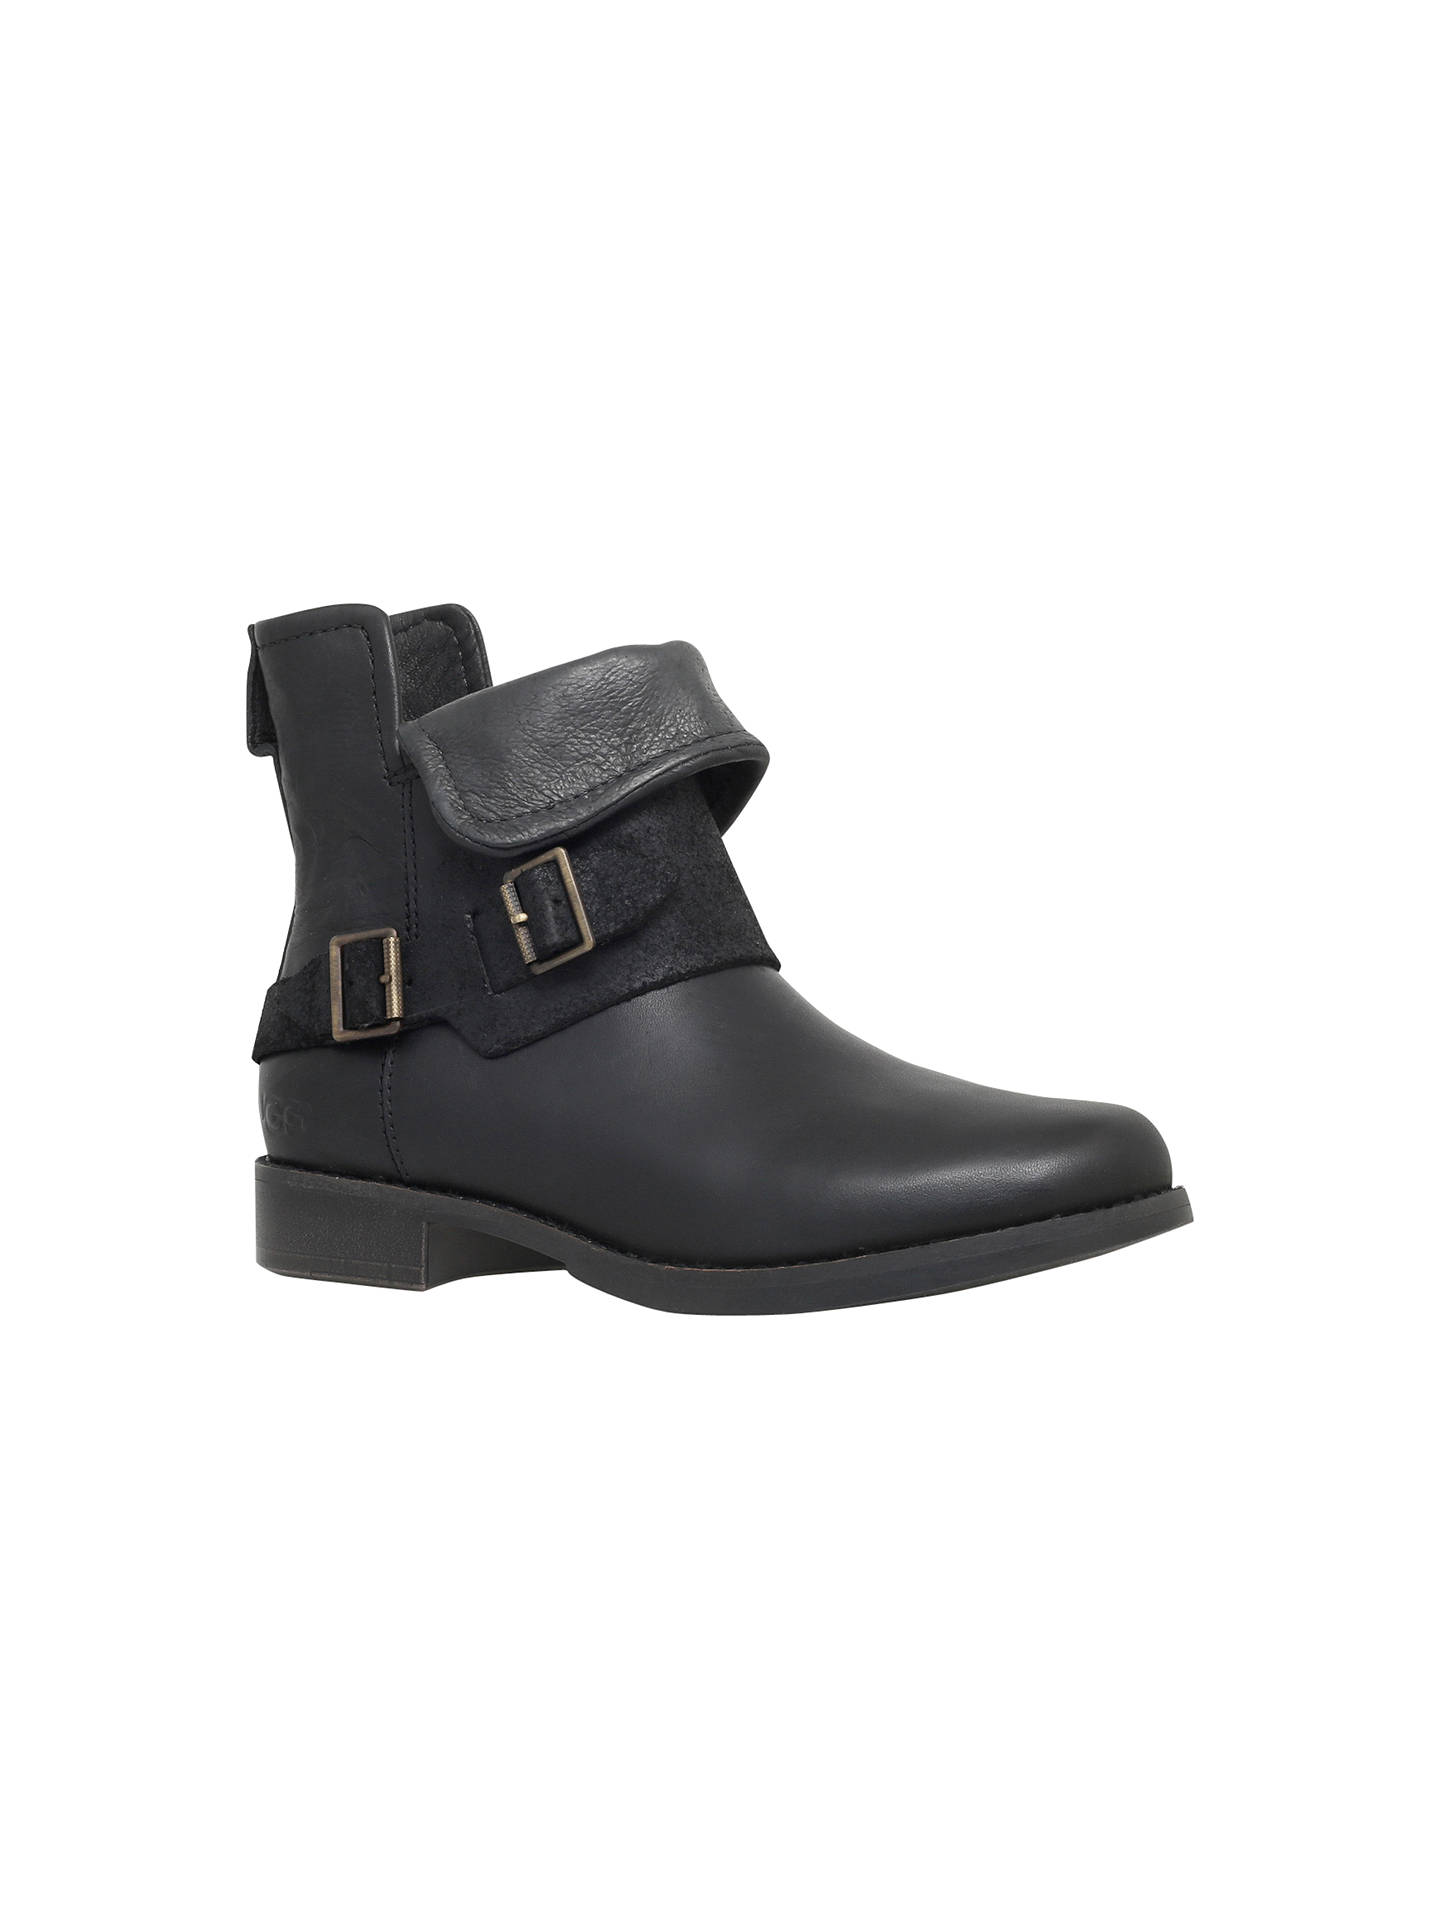 a63cc703891 UGG Cybele Studded Detail Ankle Boots, Black Leather at John Lewis ...